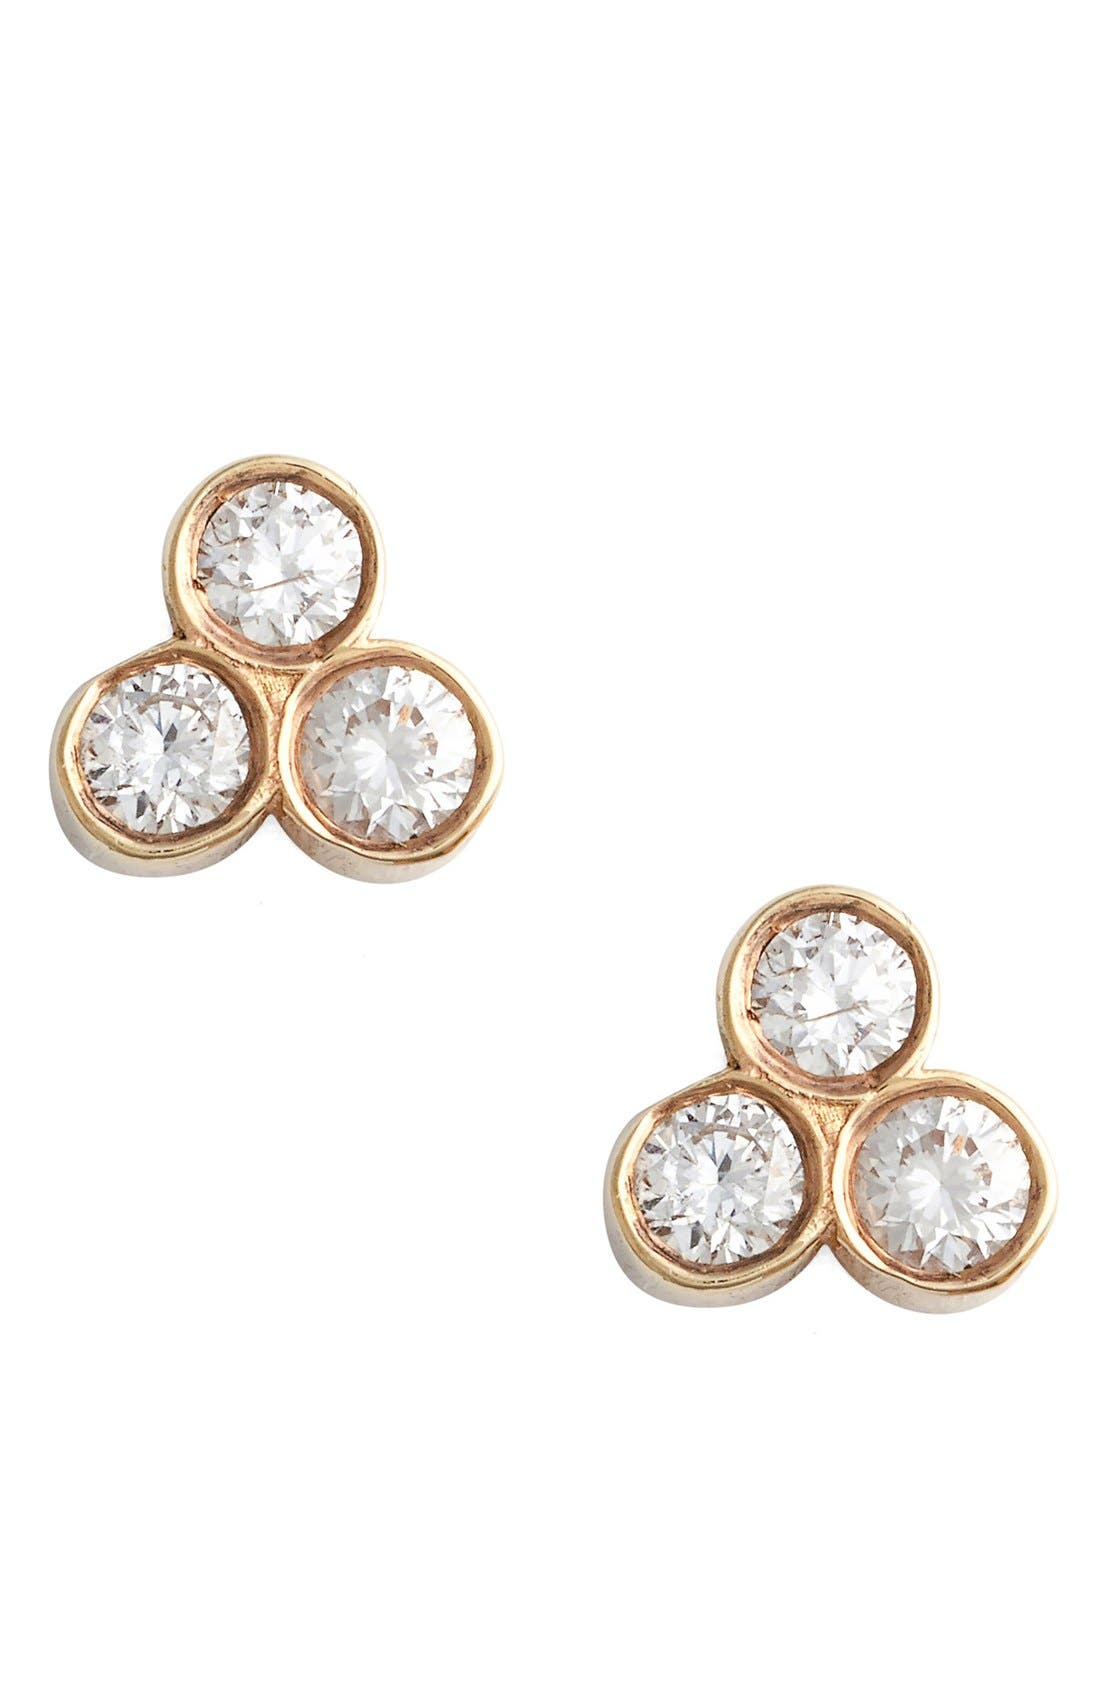 ZOË CHICCO Diamond Cluster Stud Earrings